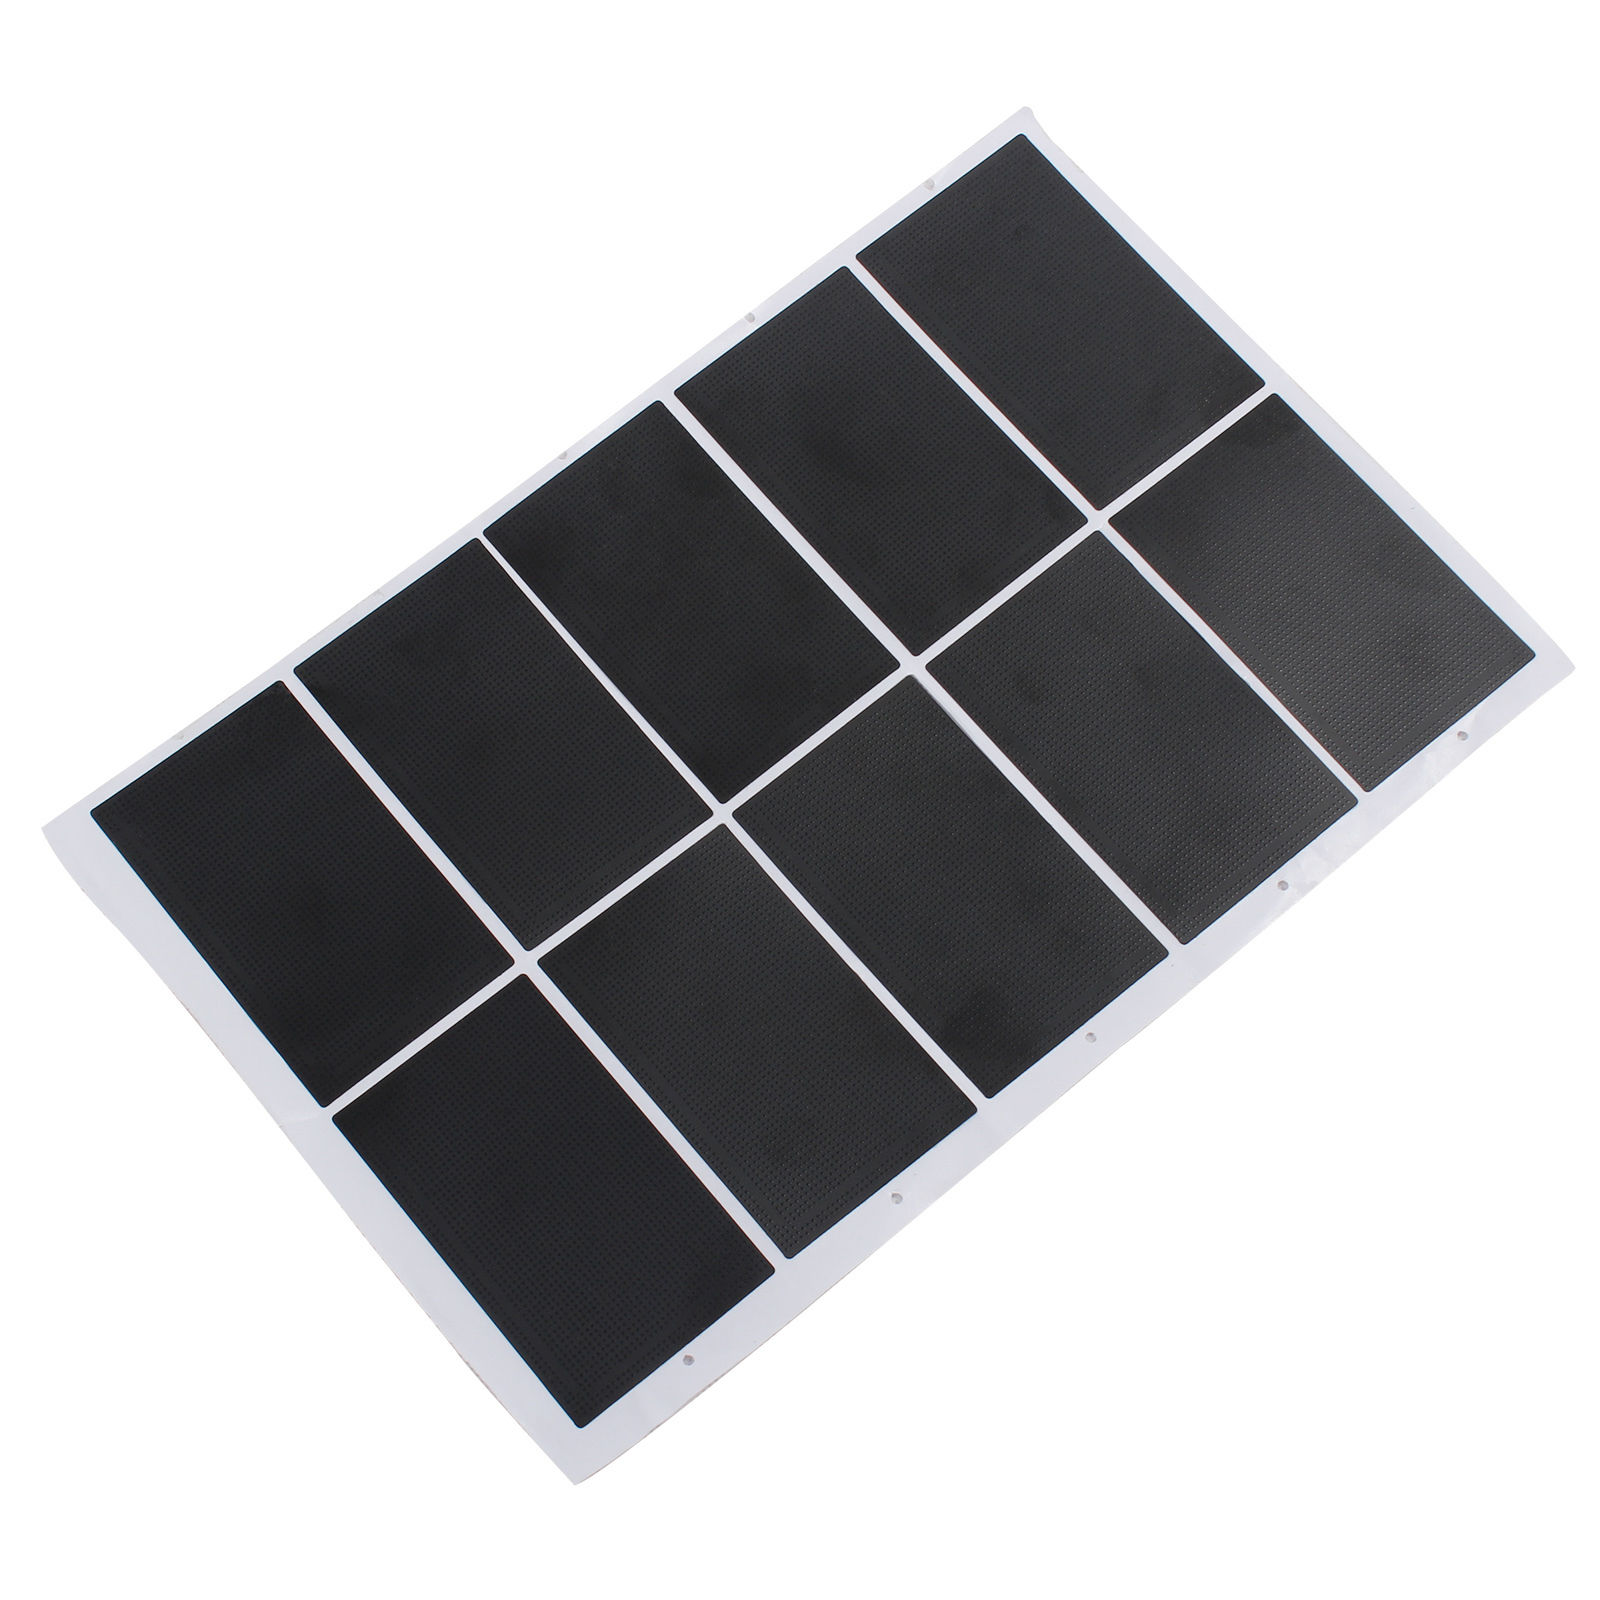 10pcs Touchpad Sticker For Ibm Lenovo Thinkpad T410 T410i T410s Review T400s T420 In Laptop Skins From Computer Office On Alibaba Group